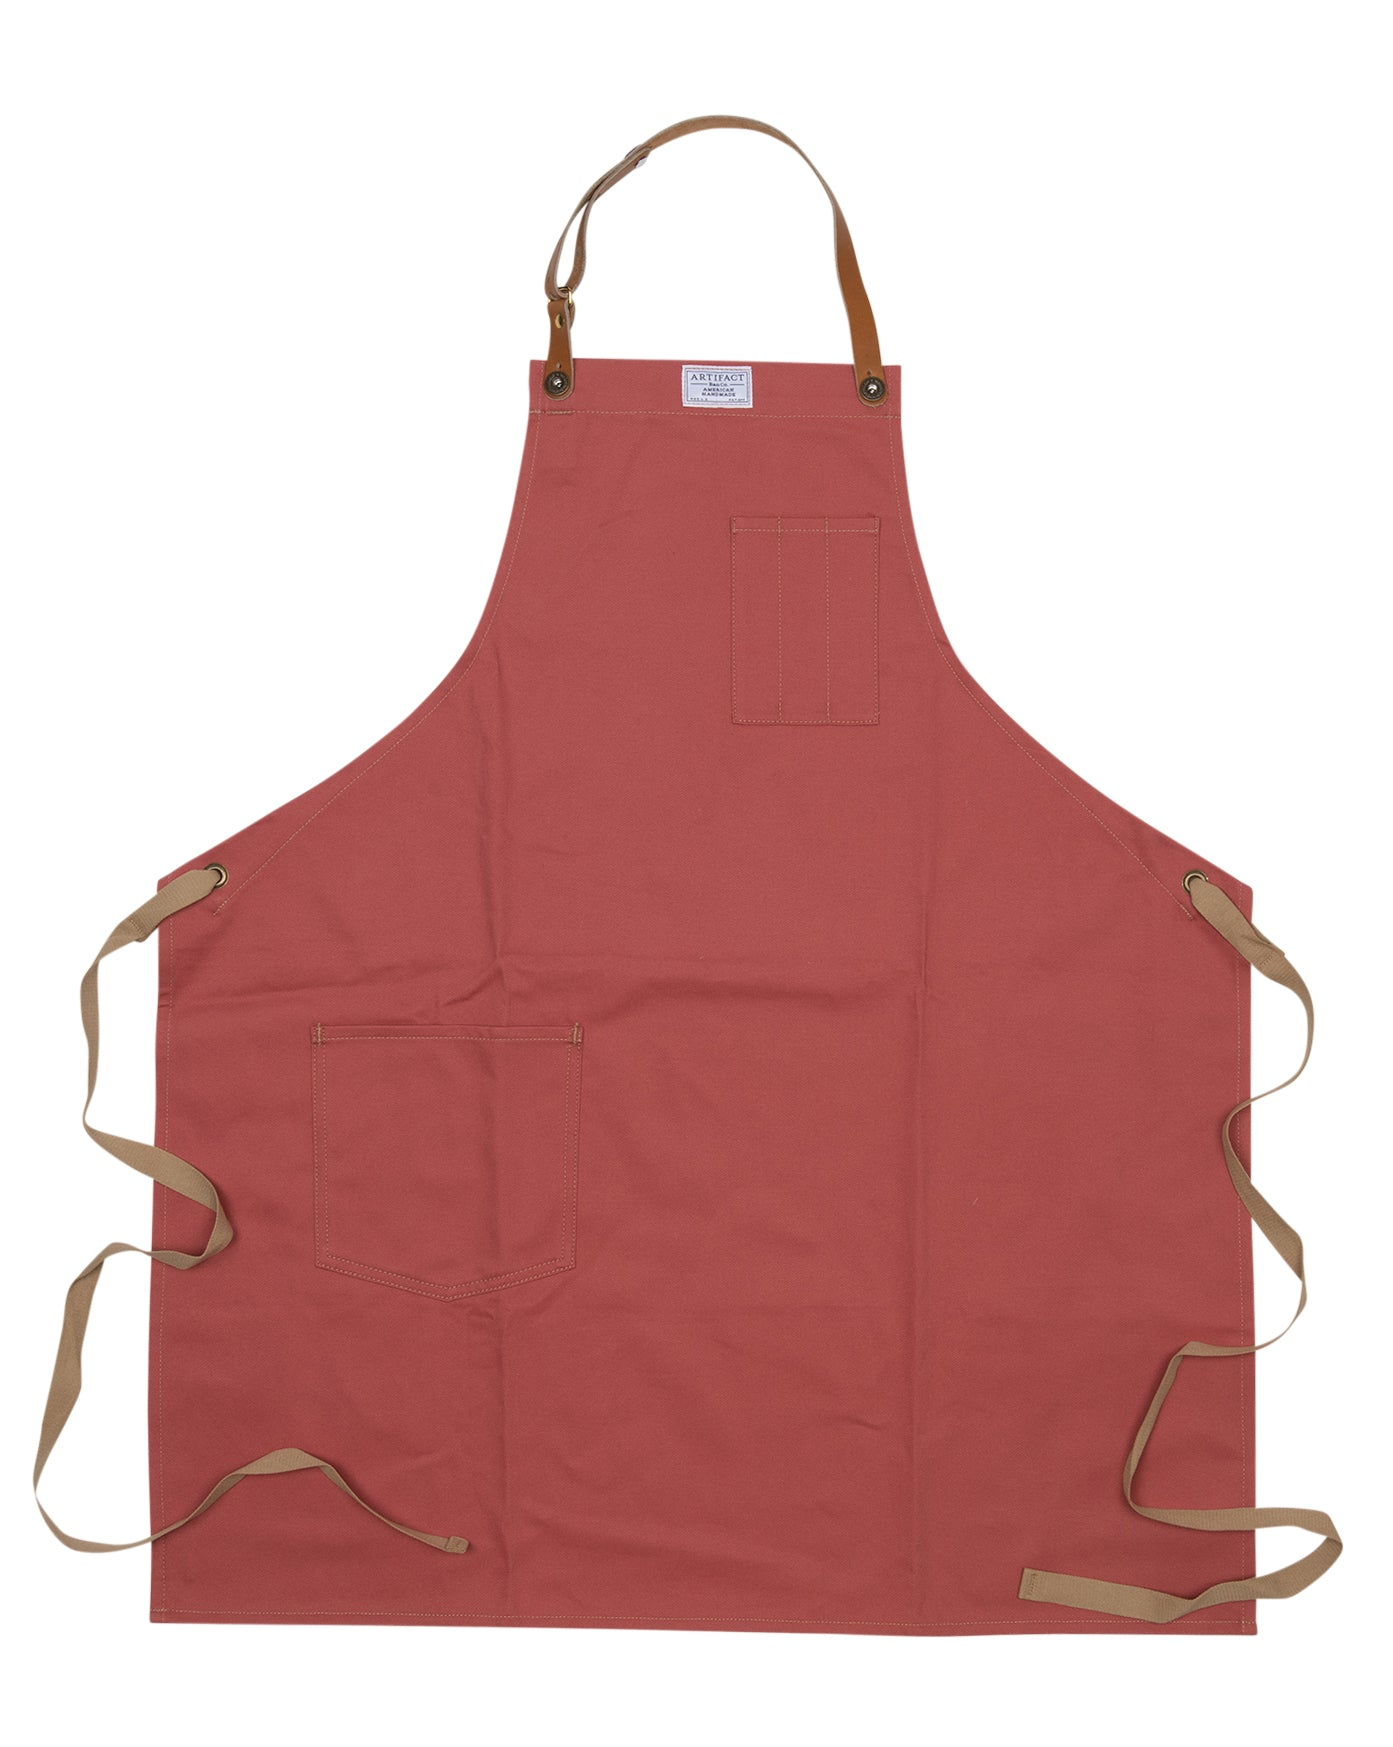 Artifact Nantucket Red Brushed Twill Apron w/ Leather Leather Strap - Universal Fit